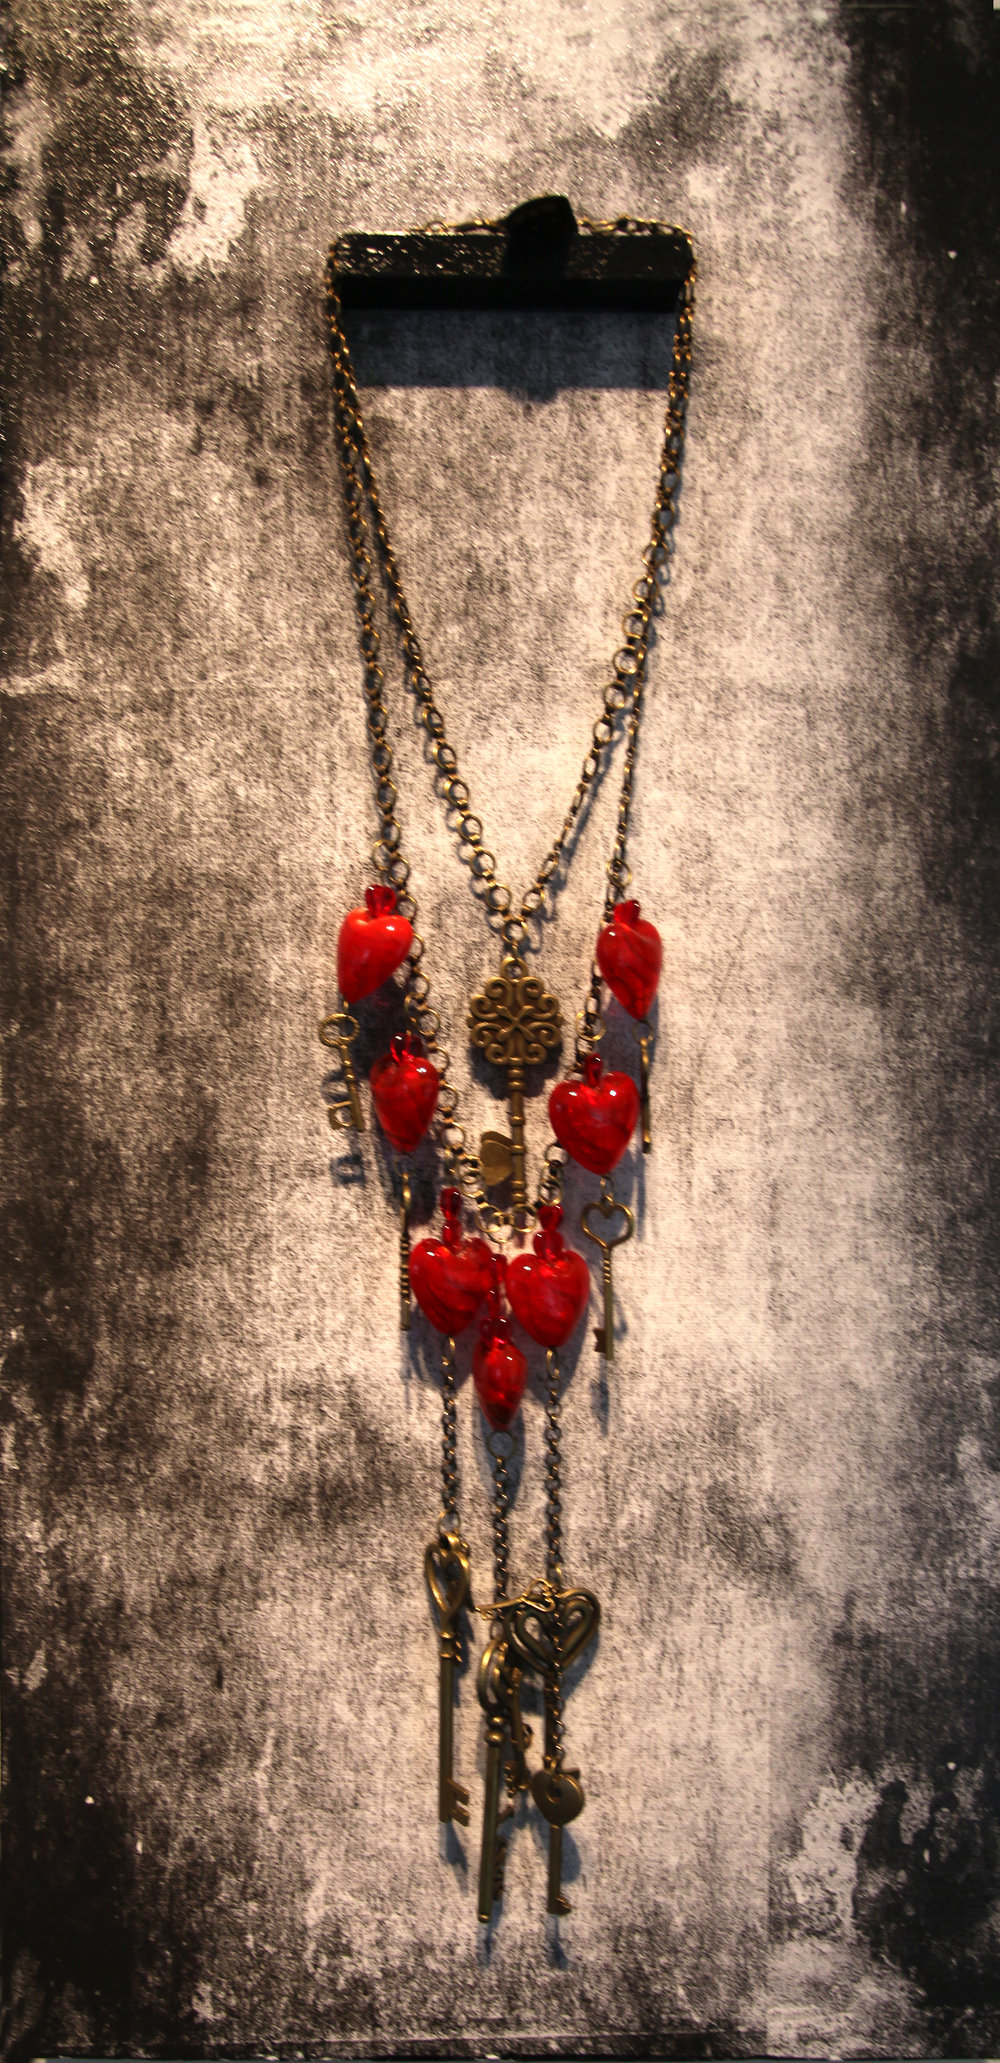 JK 003 Necklace with panel, 2016 Mixed Media